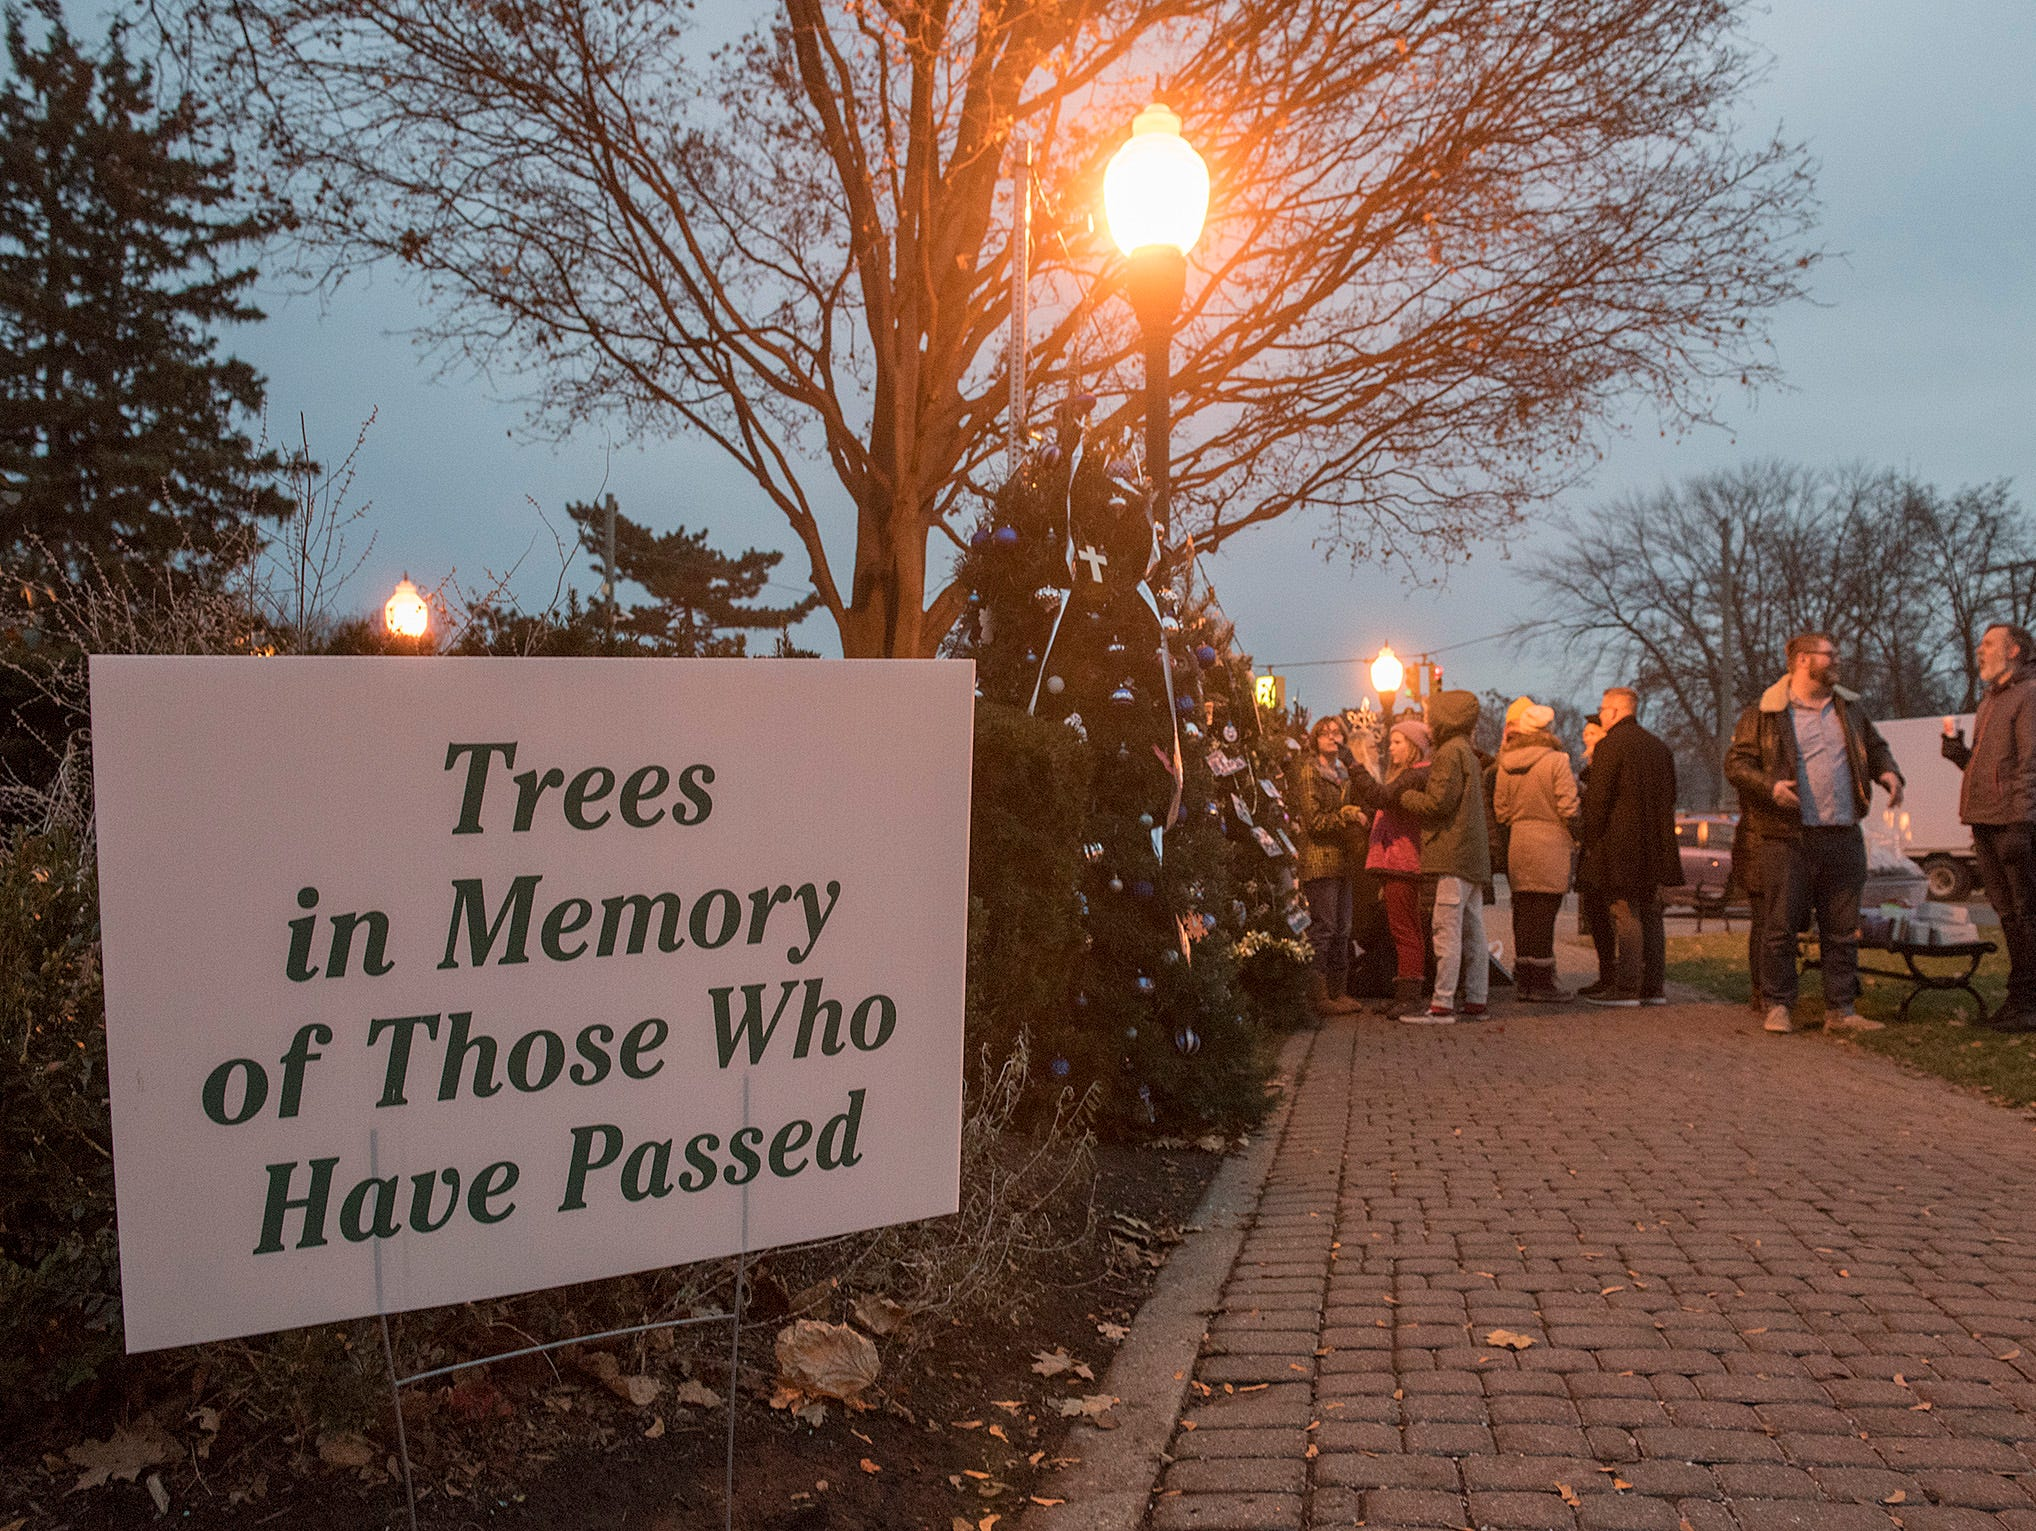 Families are decorating memorial trees to remember loved ones.